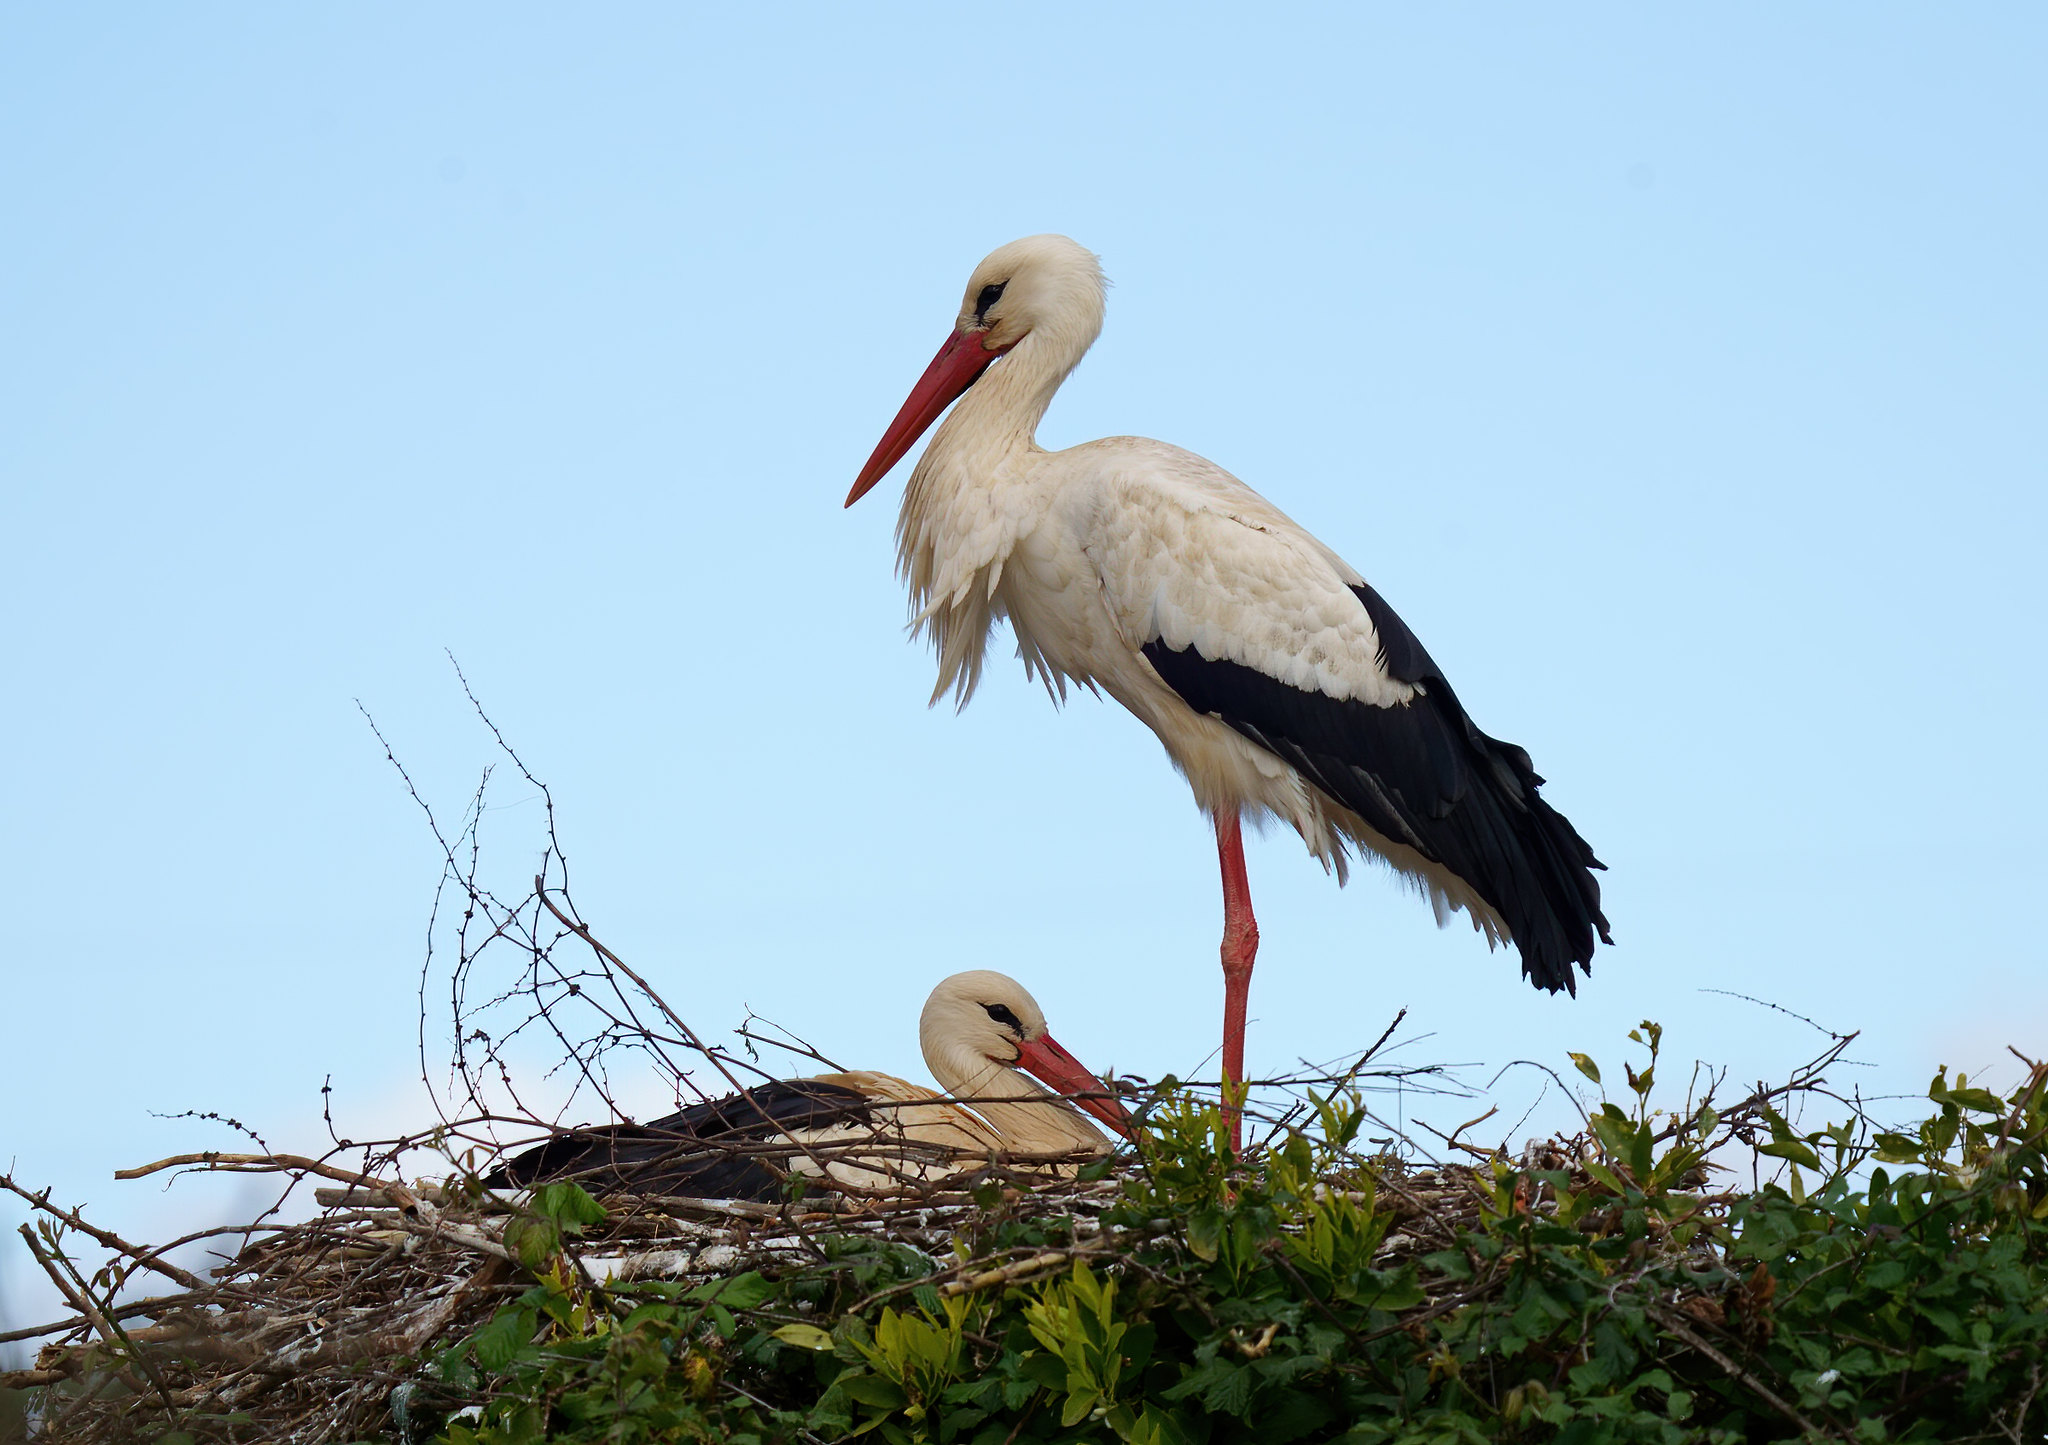 White Stork/s near Monchique